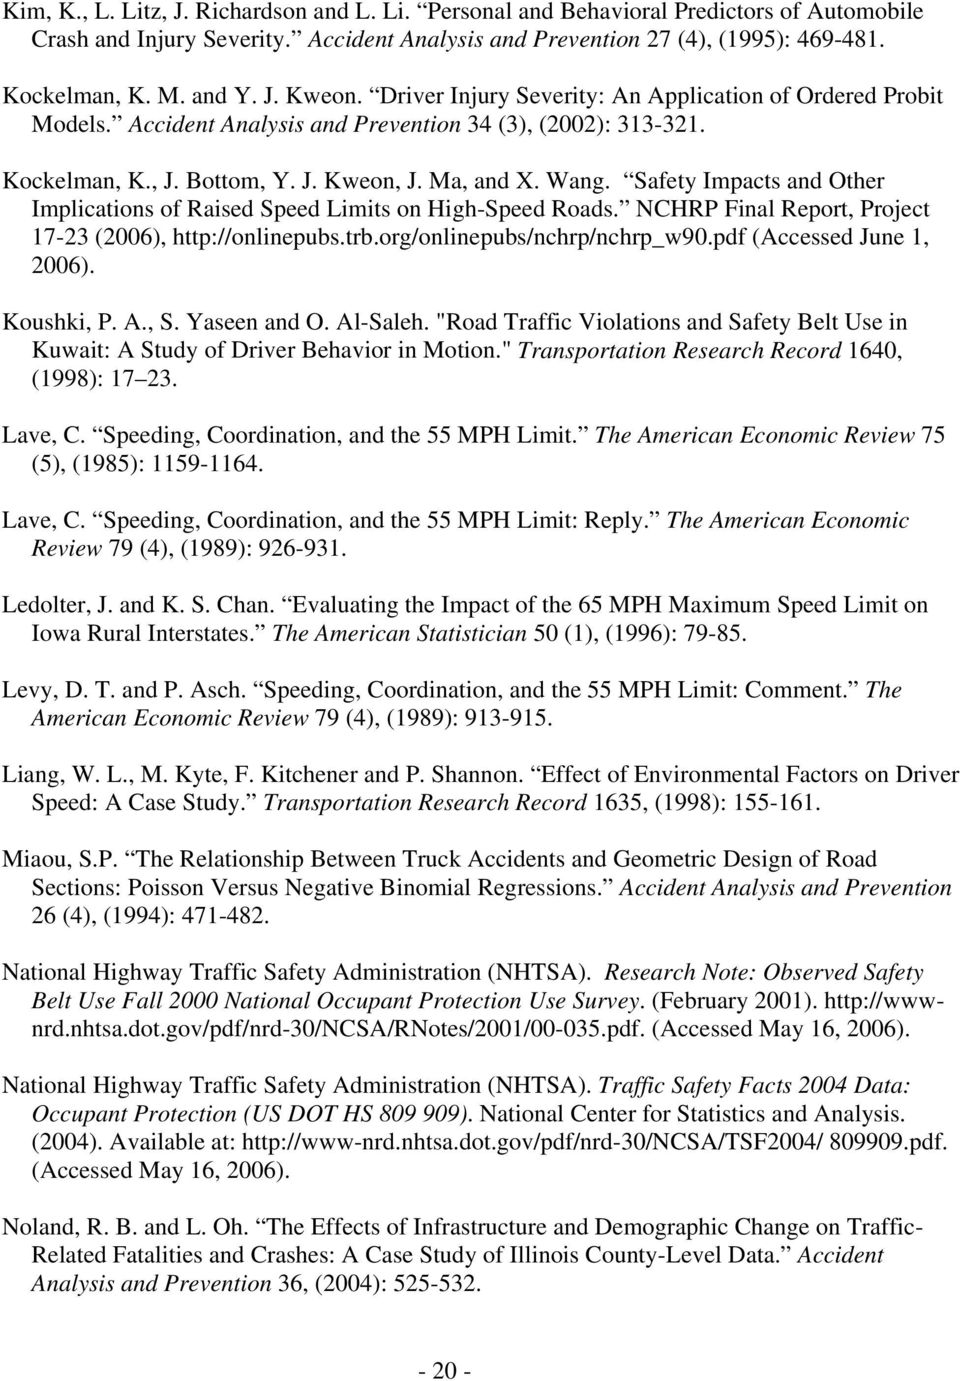 Sfety Impcts nd Other Implctons of Rsed Speed Lmts on Hgh-Speed Rods. NCHRP Fnl Report, Project 17-23 (2006), http://onlnepubs.trb.org/onlnepubs/nchrp/nchrp_w90.pdf (Accessed June 1, 2006). Koushk, P.